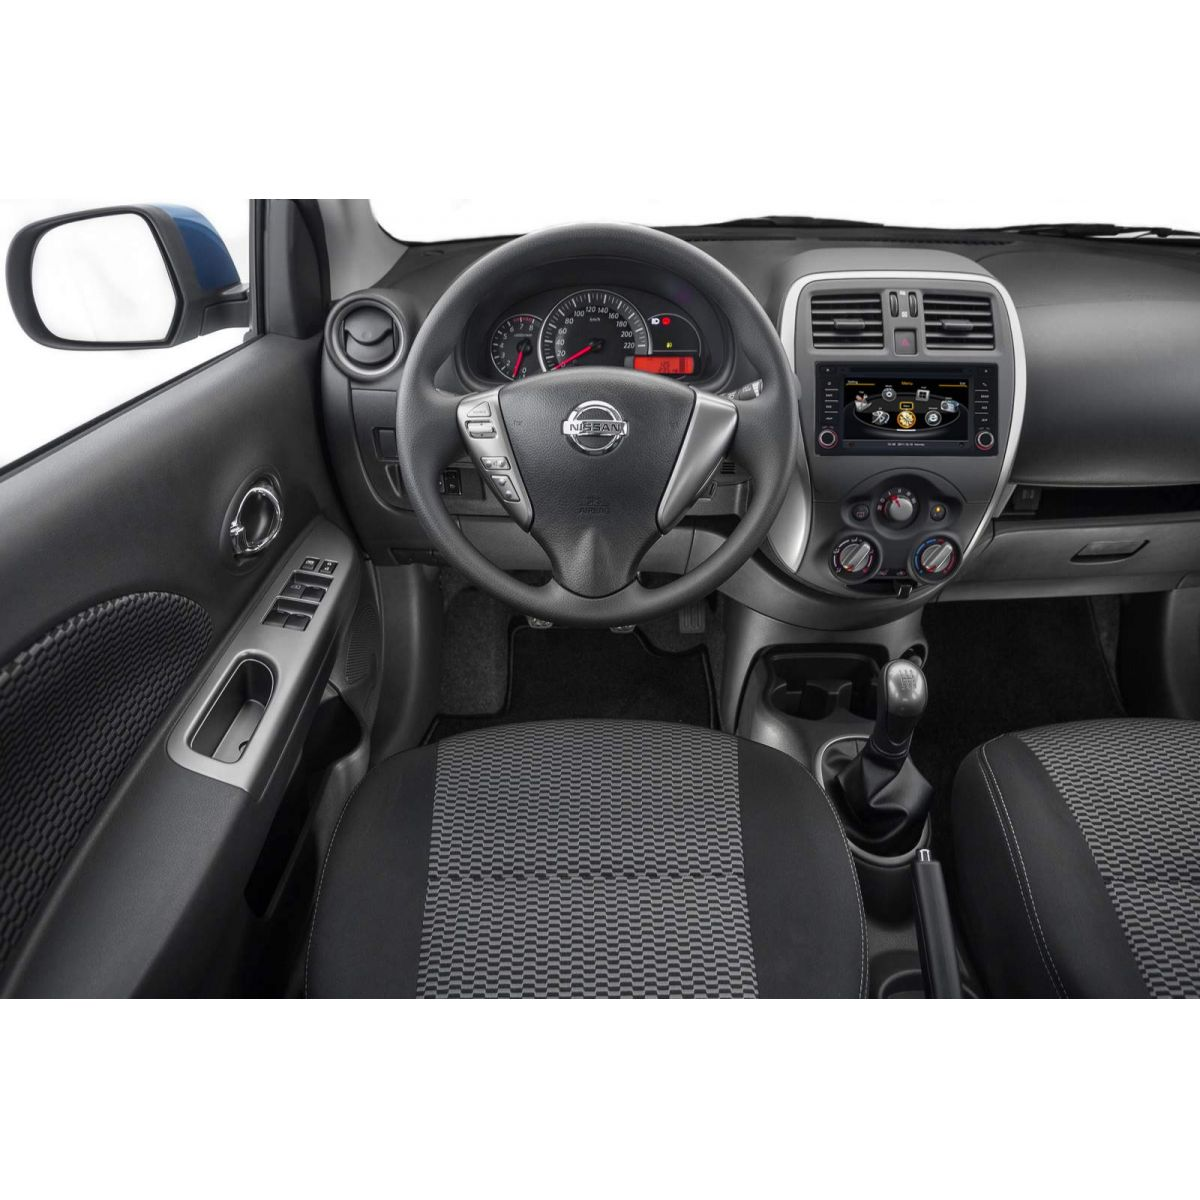 Central Multimidia Nissan March 2014 á 2019   e  Versa 2015 2017 2018 2019 Com DVD GPS Mapa Bluetooth MP3 USB Ipod SD Card Câmera Ré Grátis - Preta - Winca